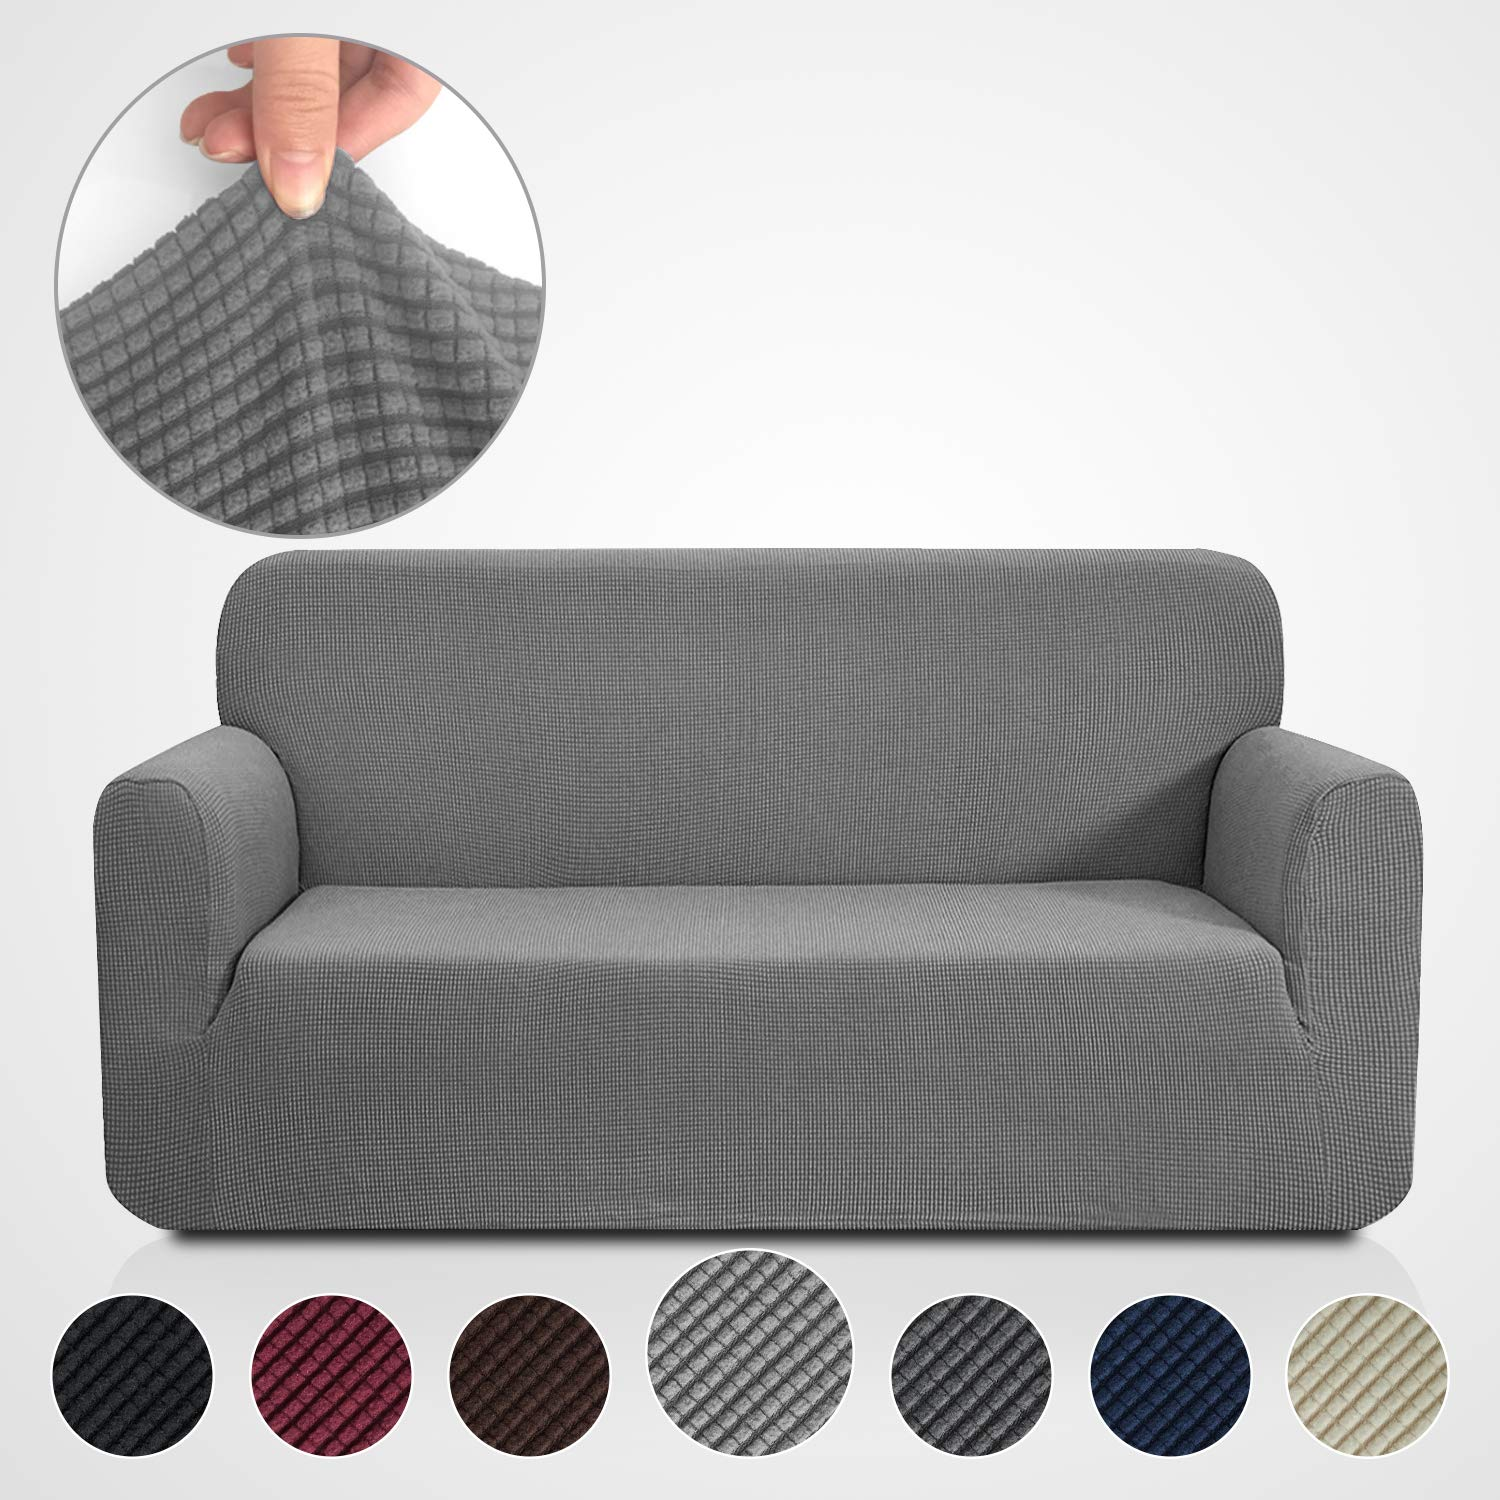 (Sofa, Grey) - RHF Jacquard-Stretch Sofa Cover, Slipcover for Leather Couch-Polyester Spandex Sofa Slipcover & Couch cover for dogs, 1-Piece sofa protector(Sofa: Grey) Sofa グレー B07219W9VQ